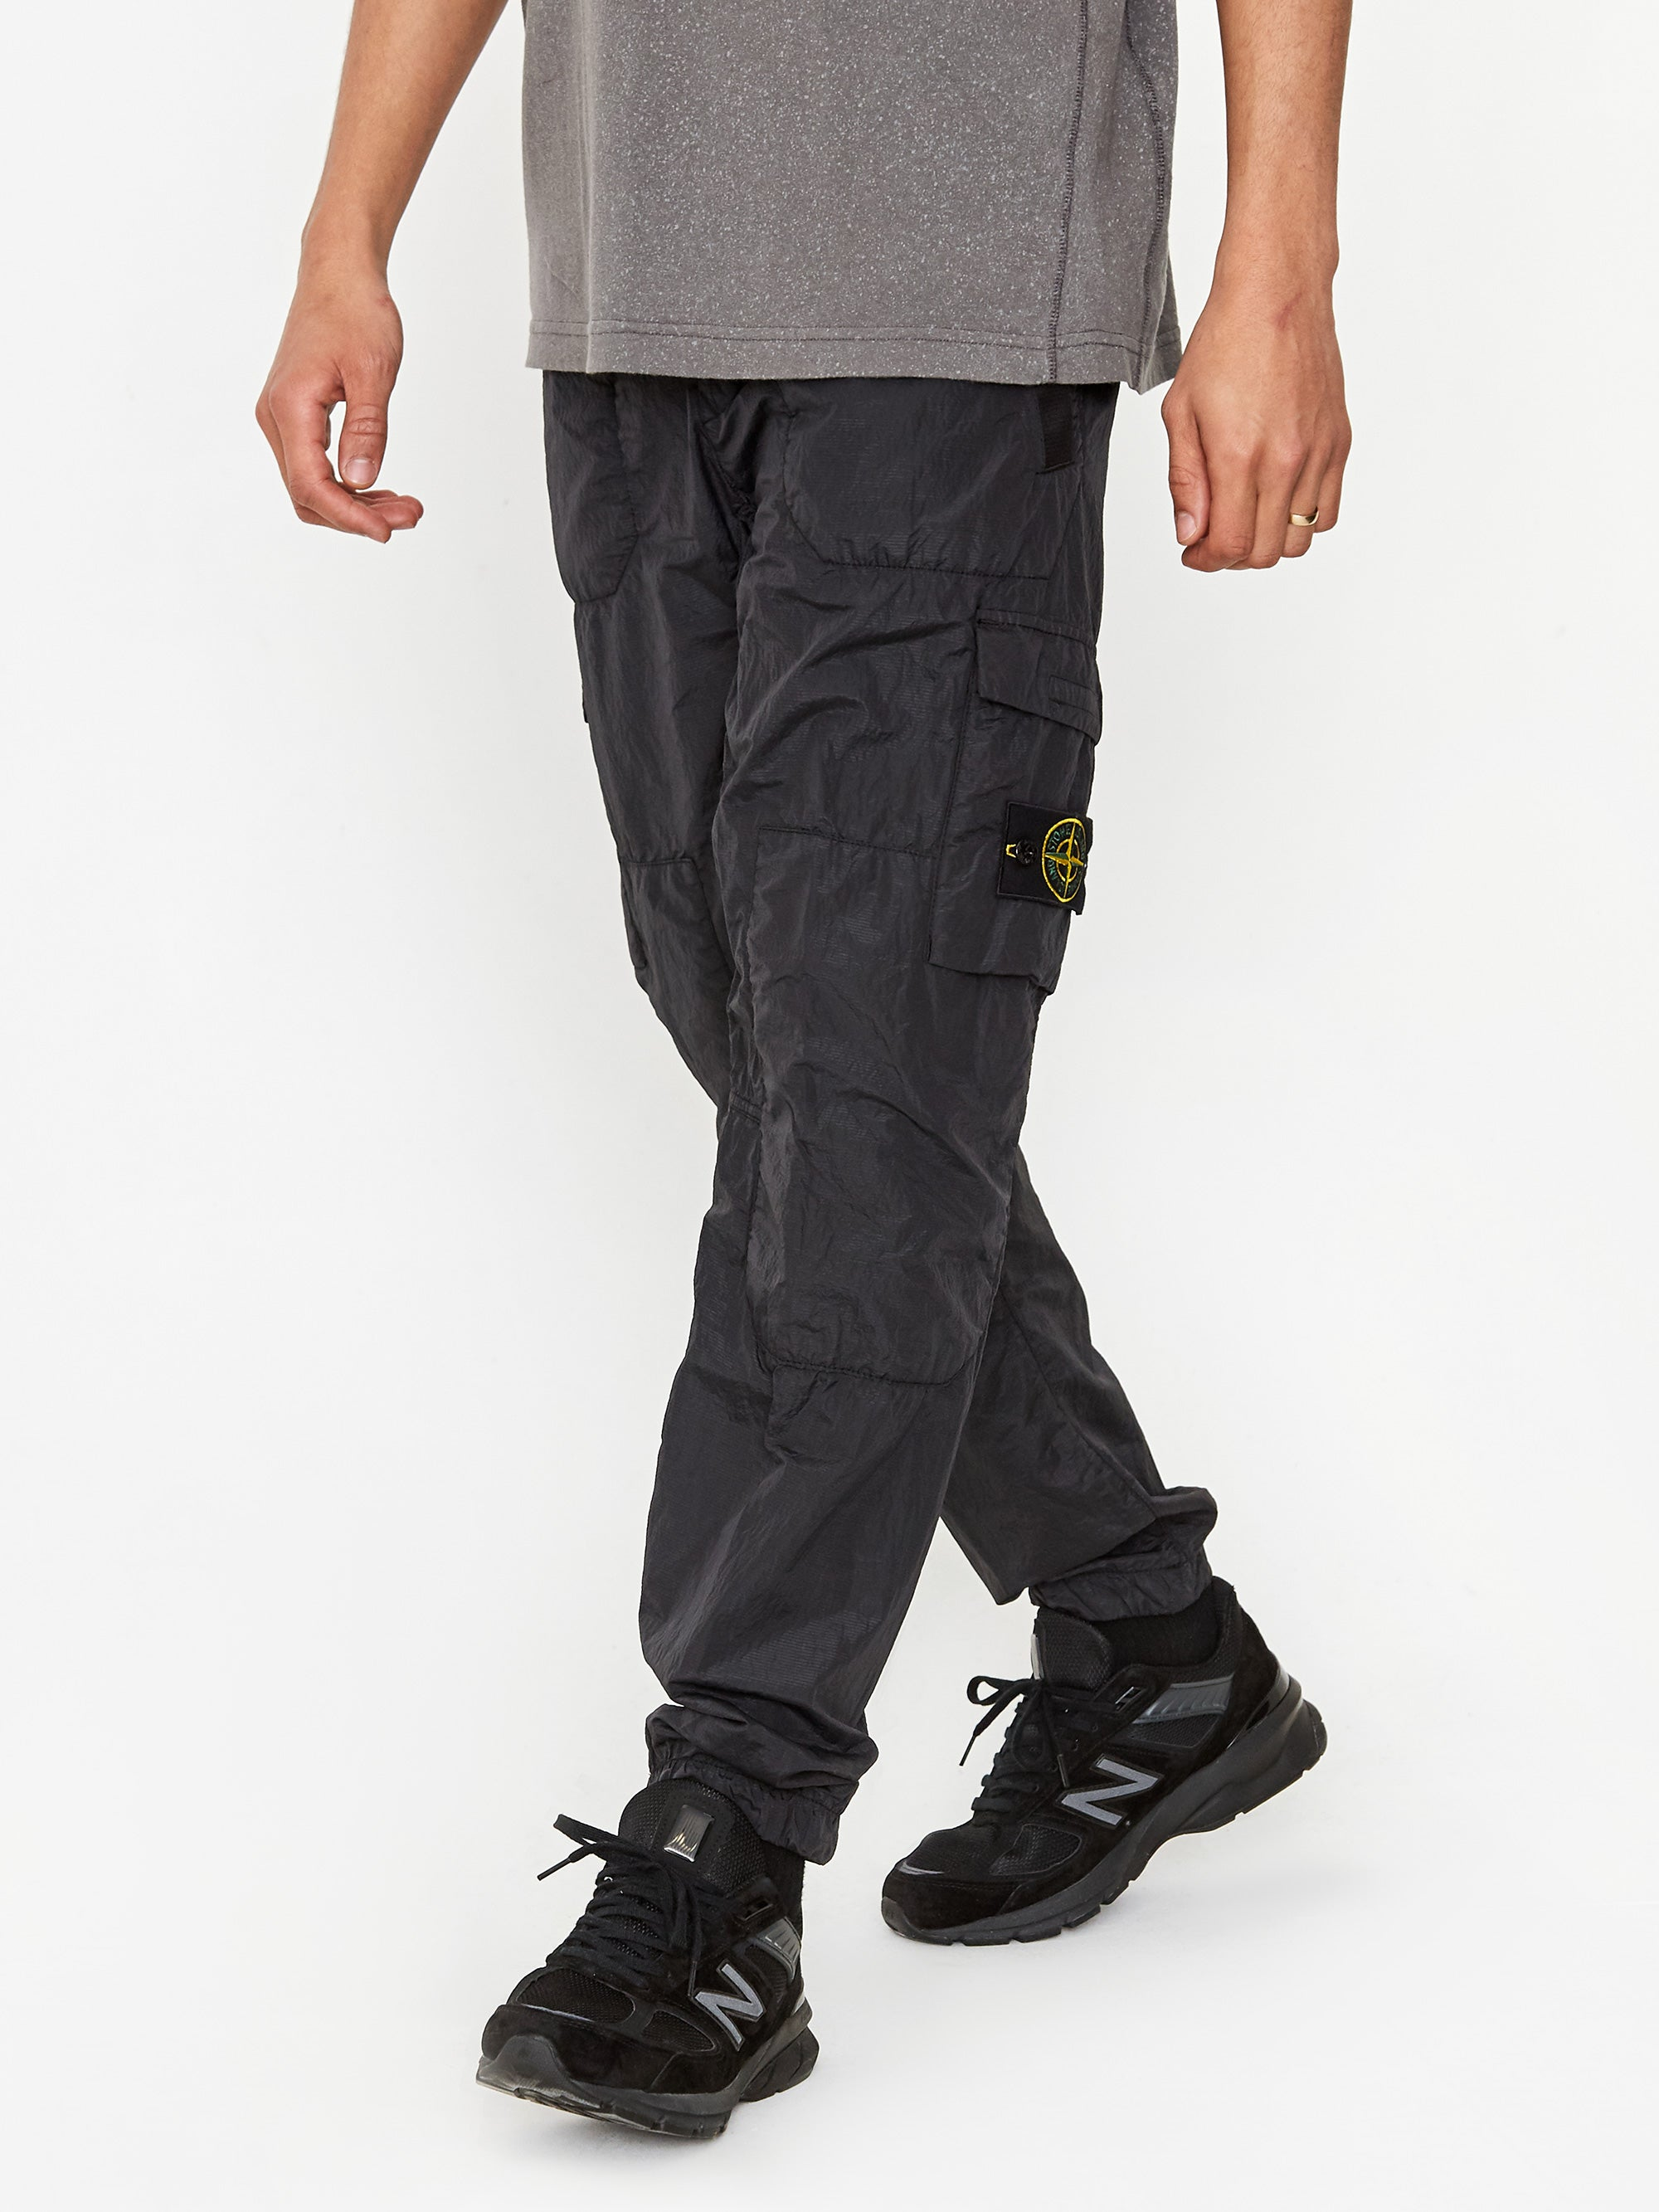 Stone Island Seersucker Trouser Black Goodhood